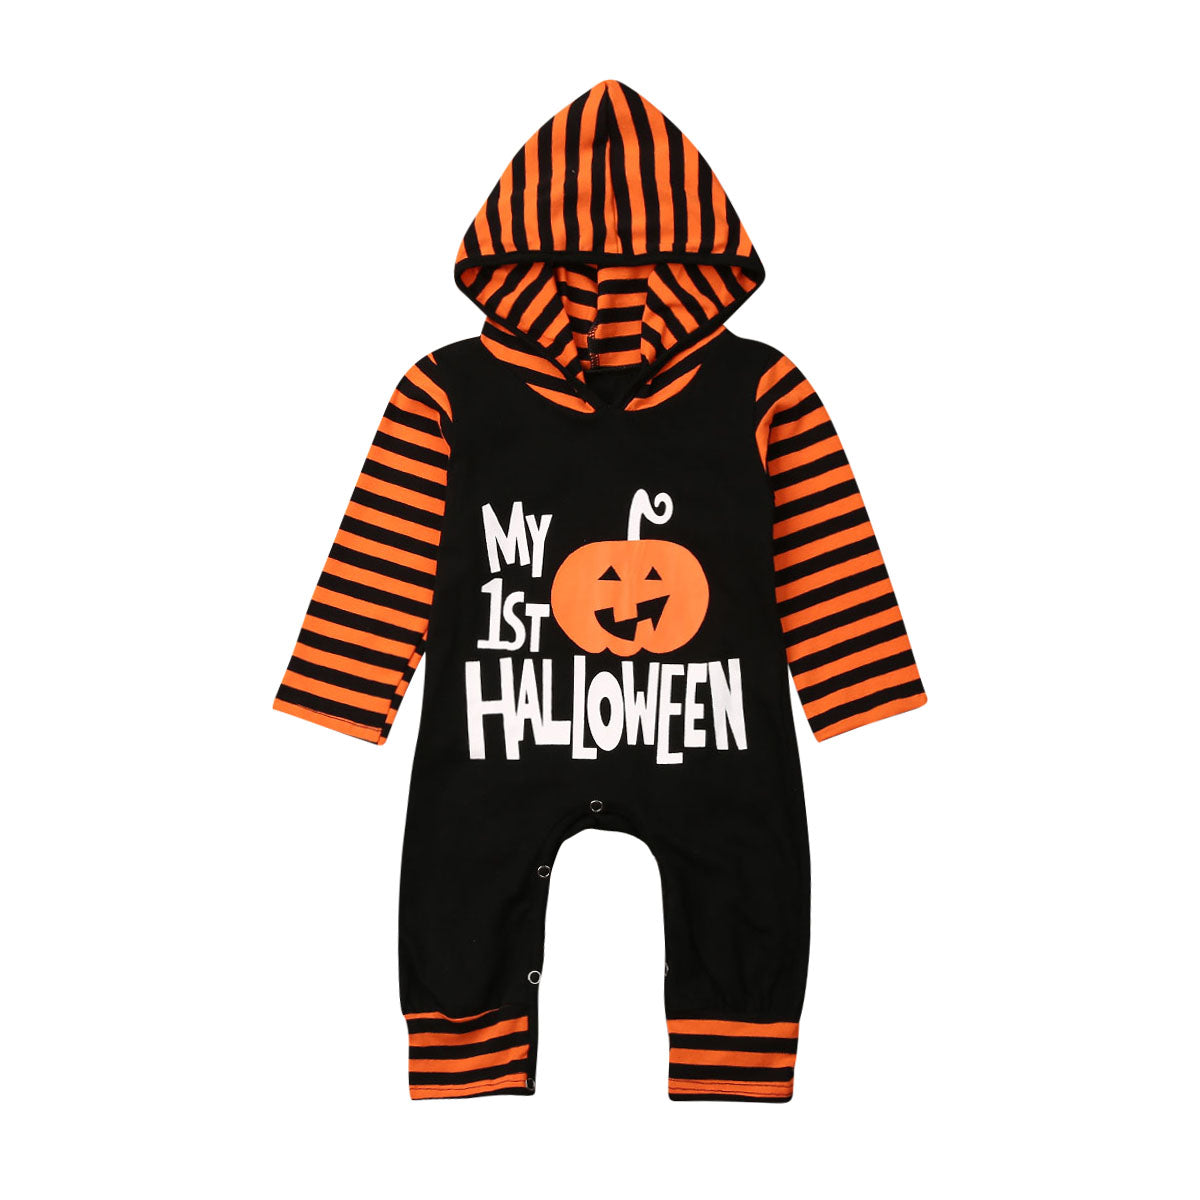 Infant Baby Boys Girls Hooded Letter Romper Jumpsuit Halloween Outfits Clothes